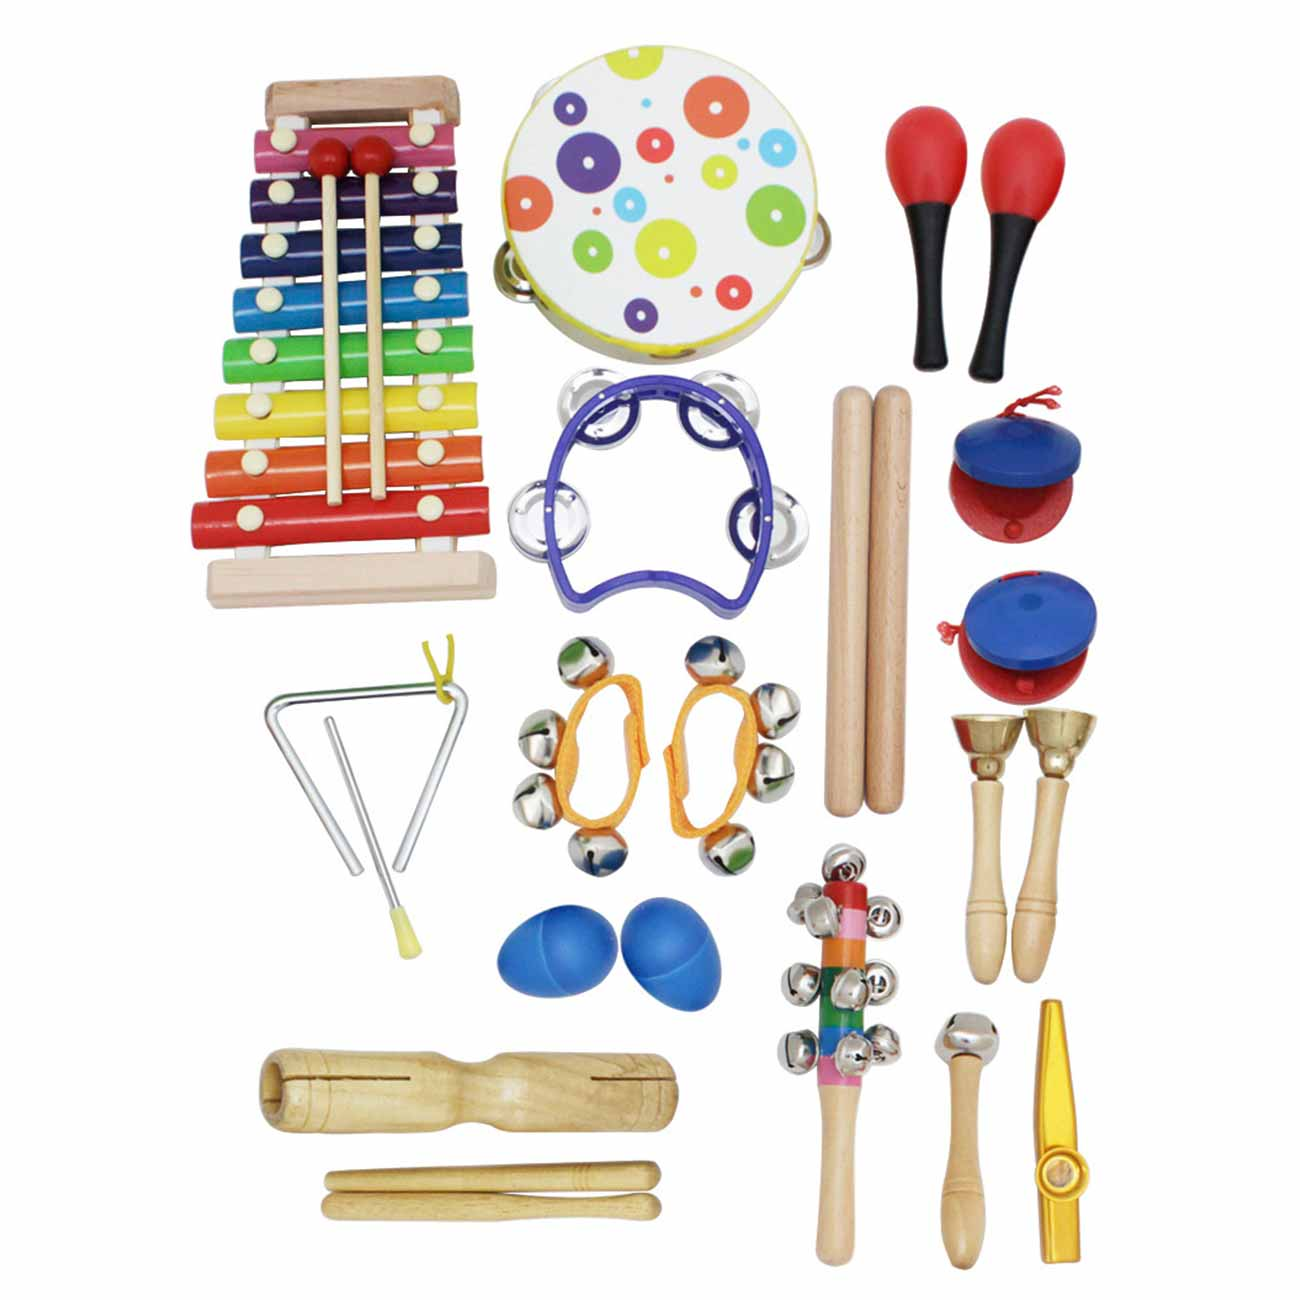 19pcs Percussion Musical Instruments Toys Kit Kid Musical Toys Set Birthday Gift for Toddlers Preschool Children Early Education enlarge